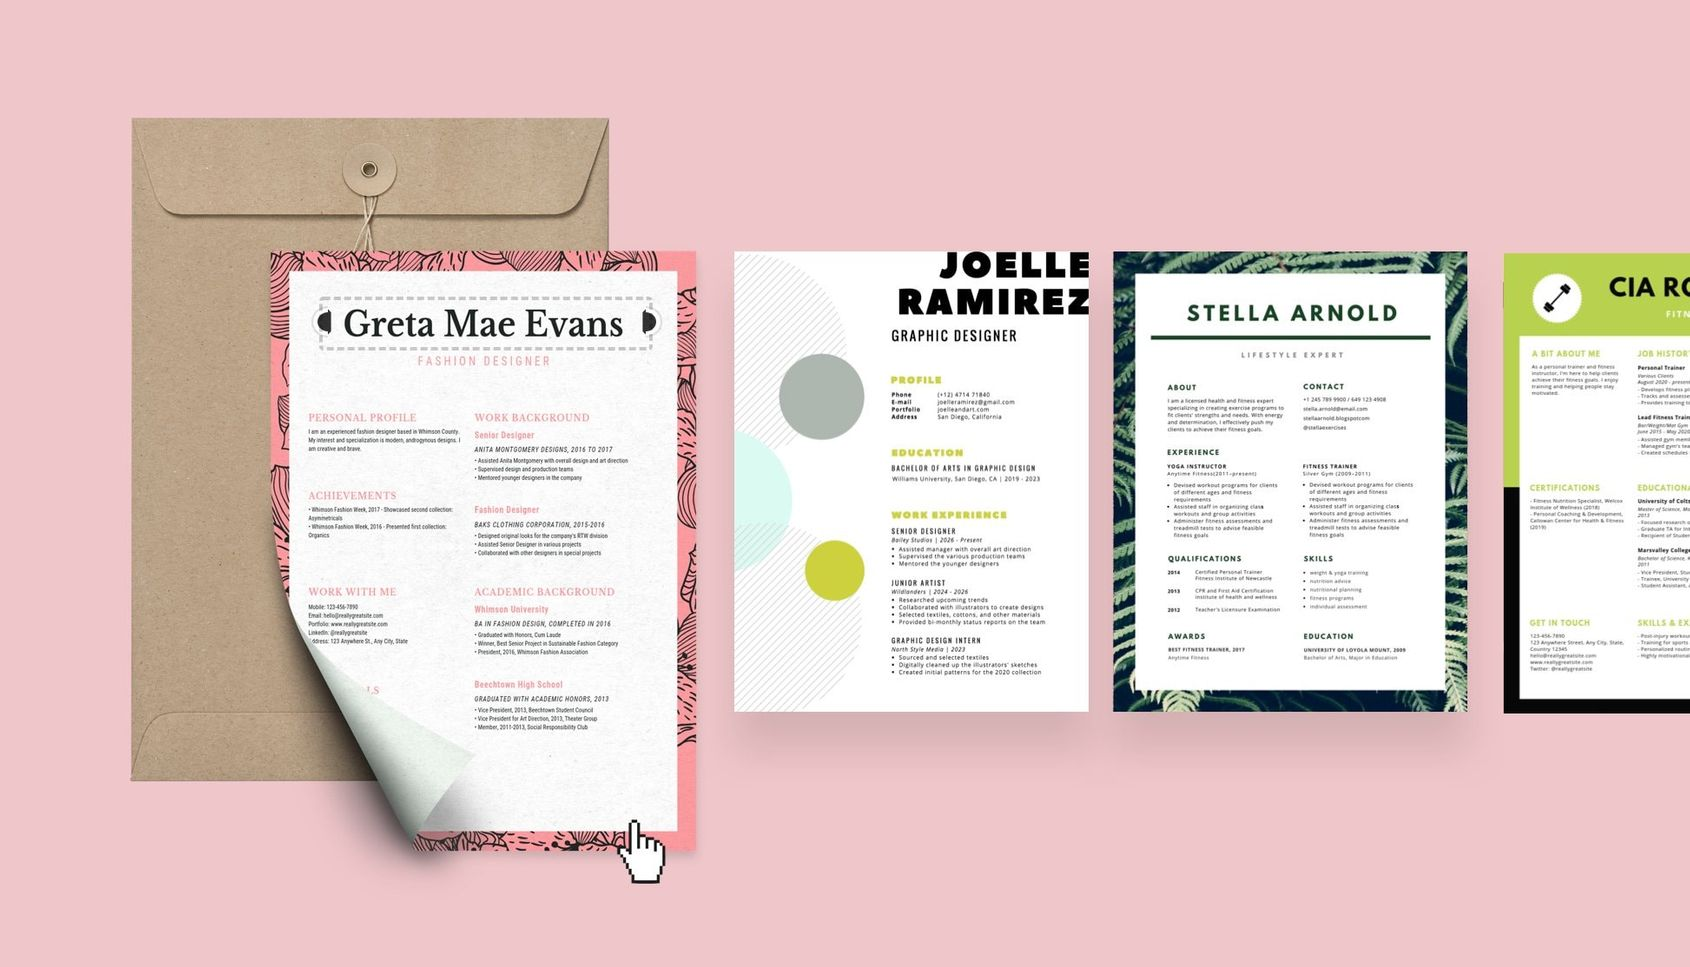 free resume builder design custom in canva without signing up veterinarian example Resume Free Resume Builder Without Signing Up